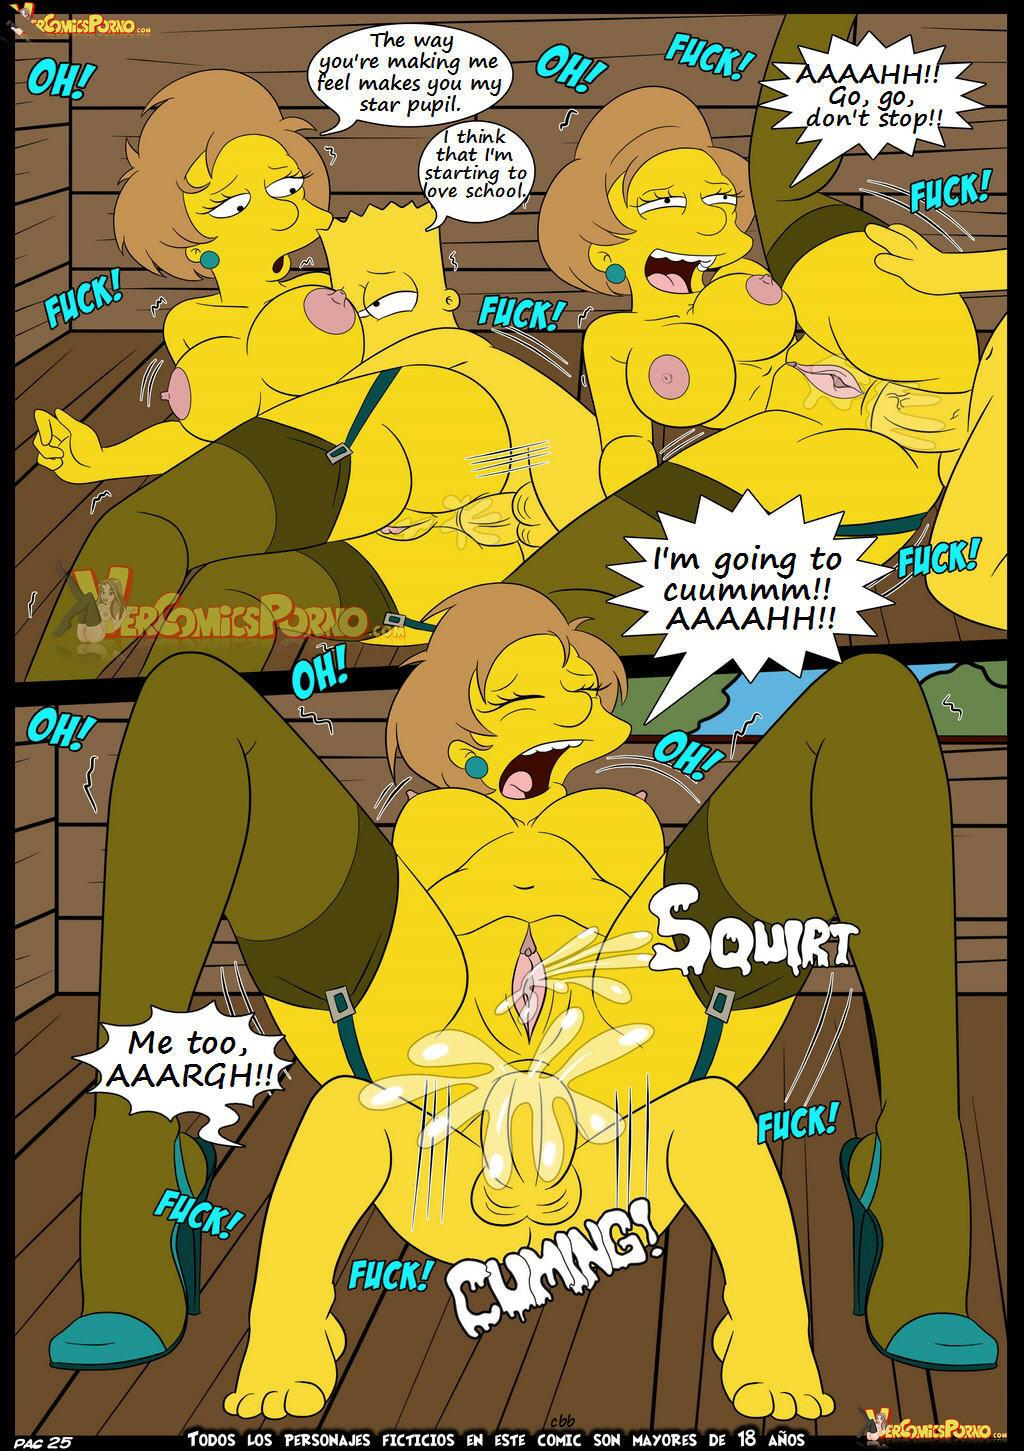 26 13 - The Simpsons. Part 5.